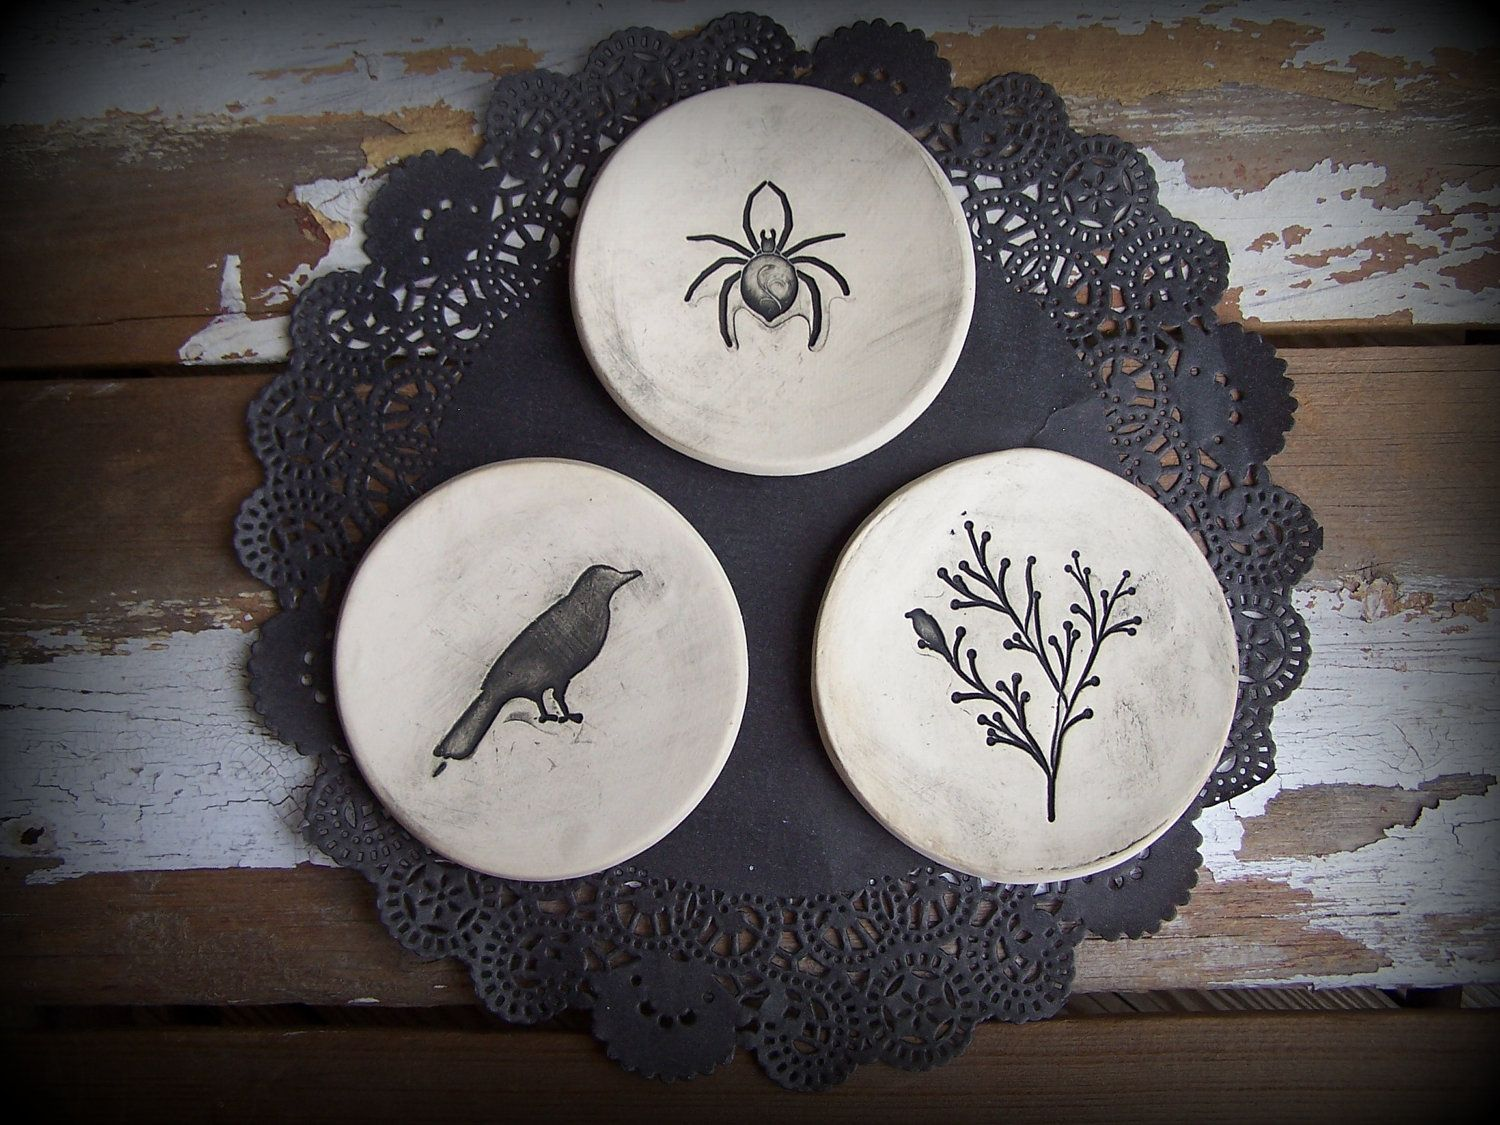 Halloween Raven Spider and Tree Trio of Decorative Mini Plates by mudandfiber on Etsy & Halloween Raven Spider and Tree Trio of Decorative Mini Plates by ...